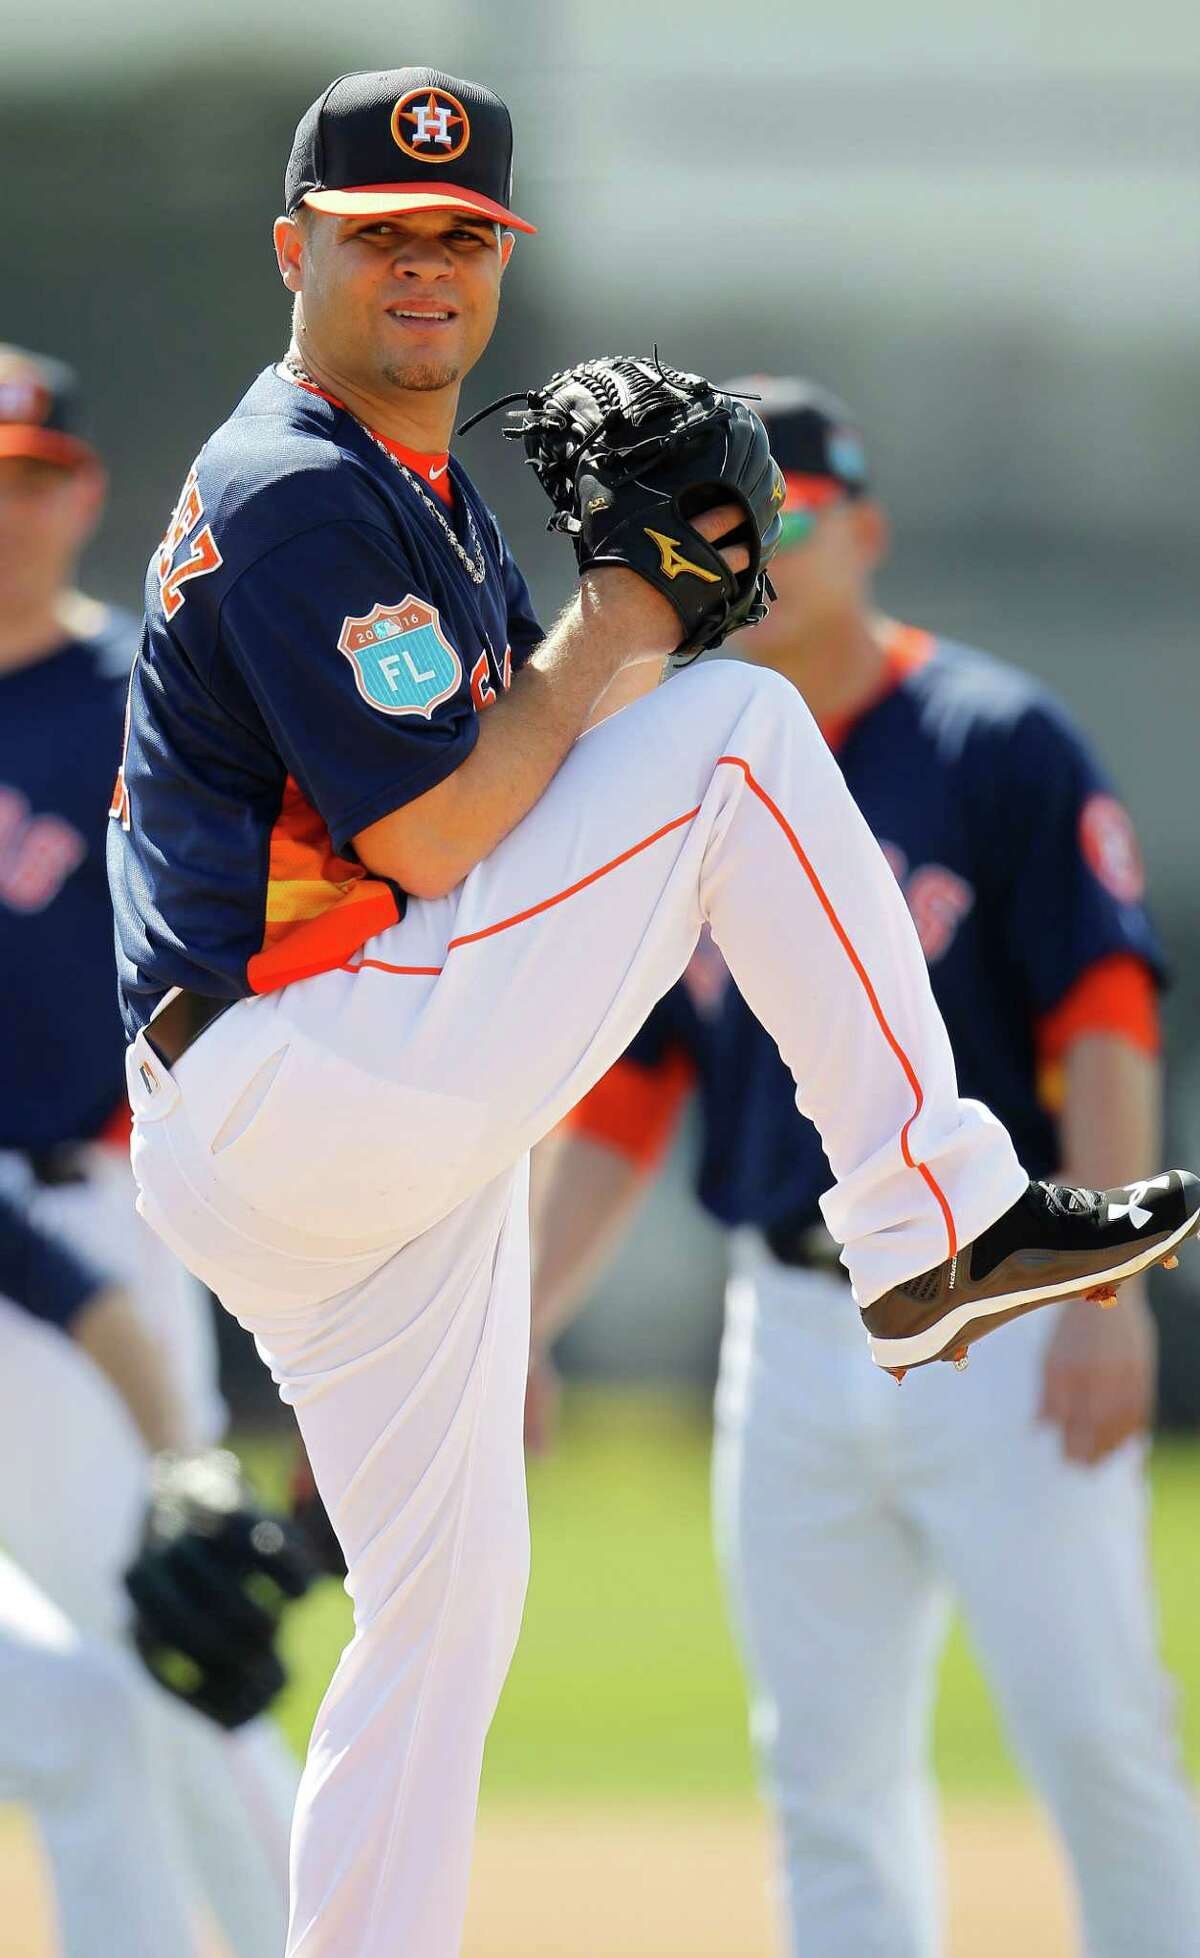 The Astros know they will get lefthander Wandy Rodriguez's best effort as he tries to make the team in spring training. He was with the Astros from 2005 until 2012.